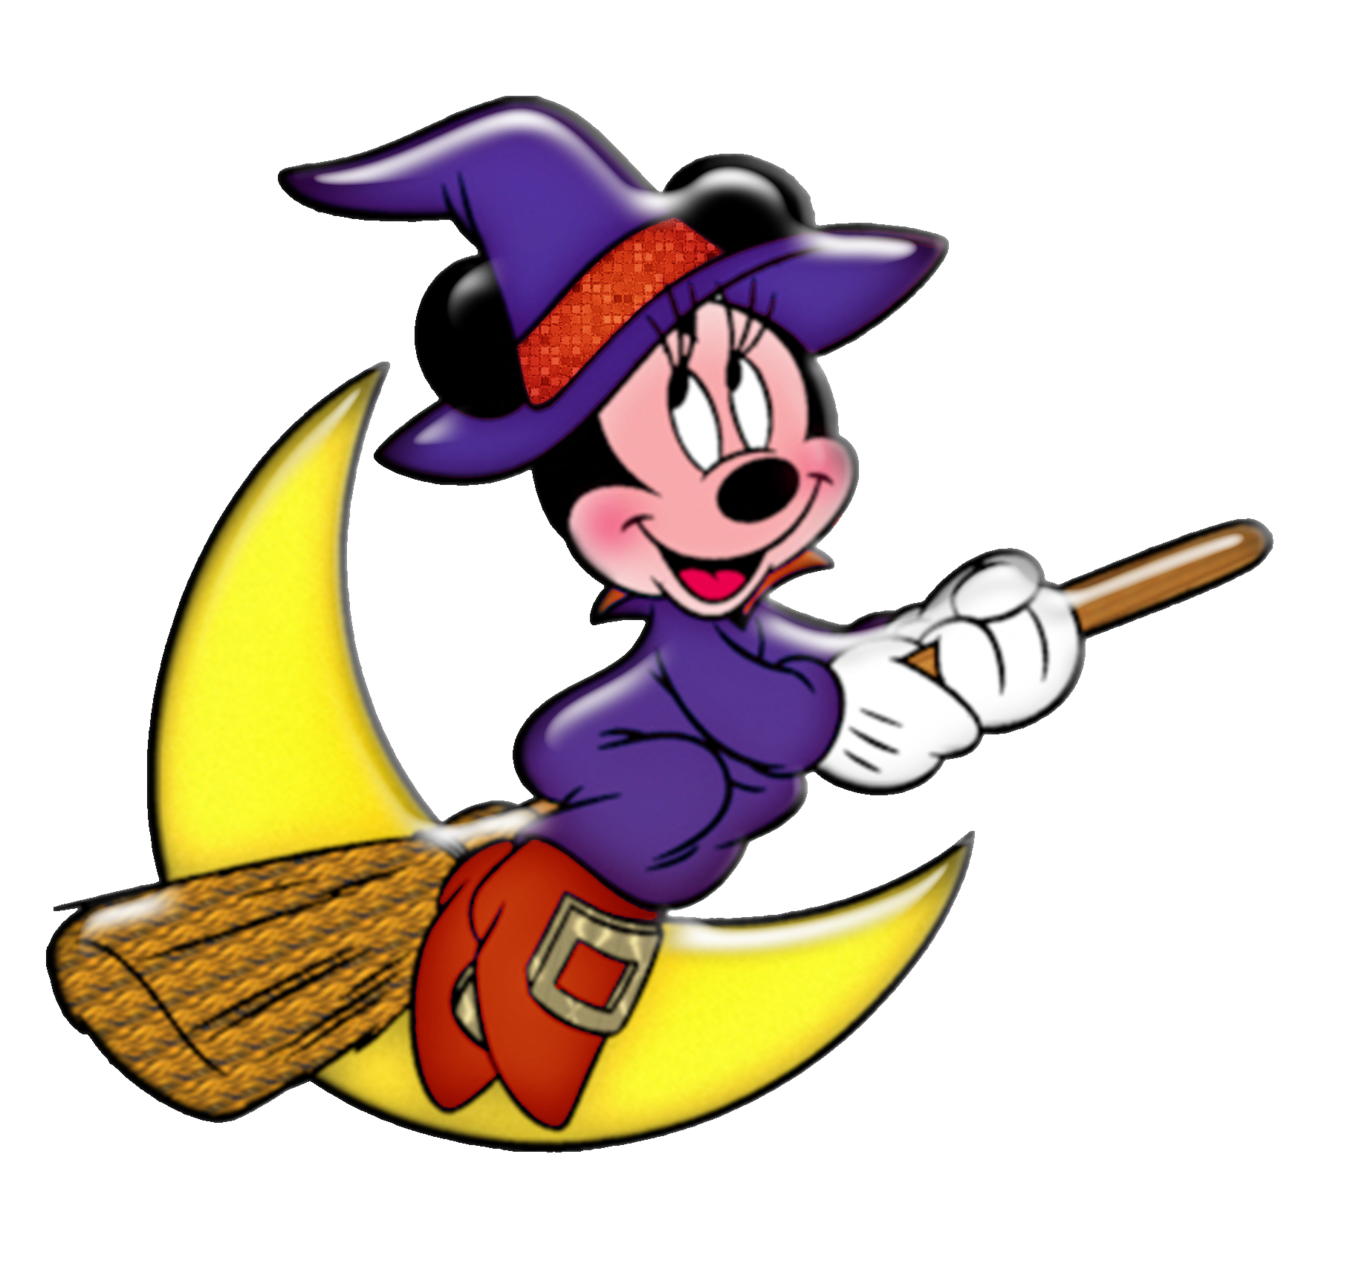 Animated halloween clipart clip art library Minnie | Halloween Skirt | Pinterest | Halloween skirt clip art library